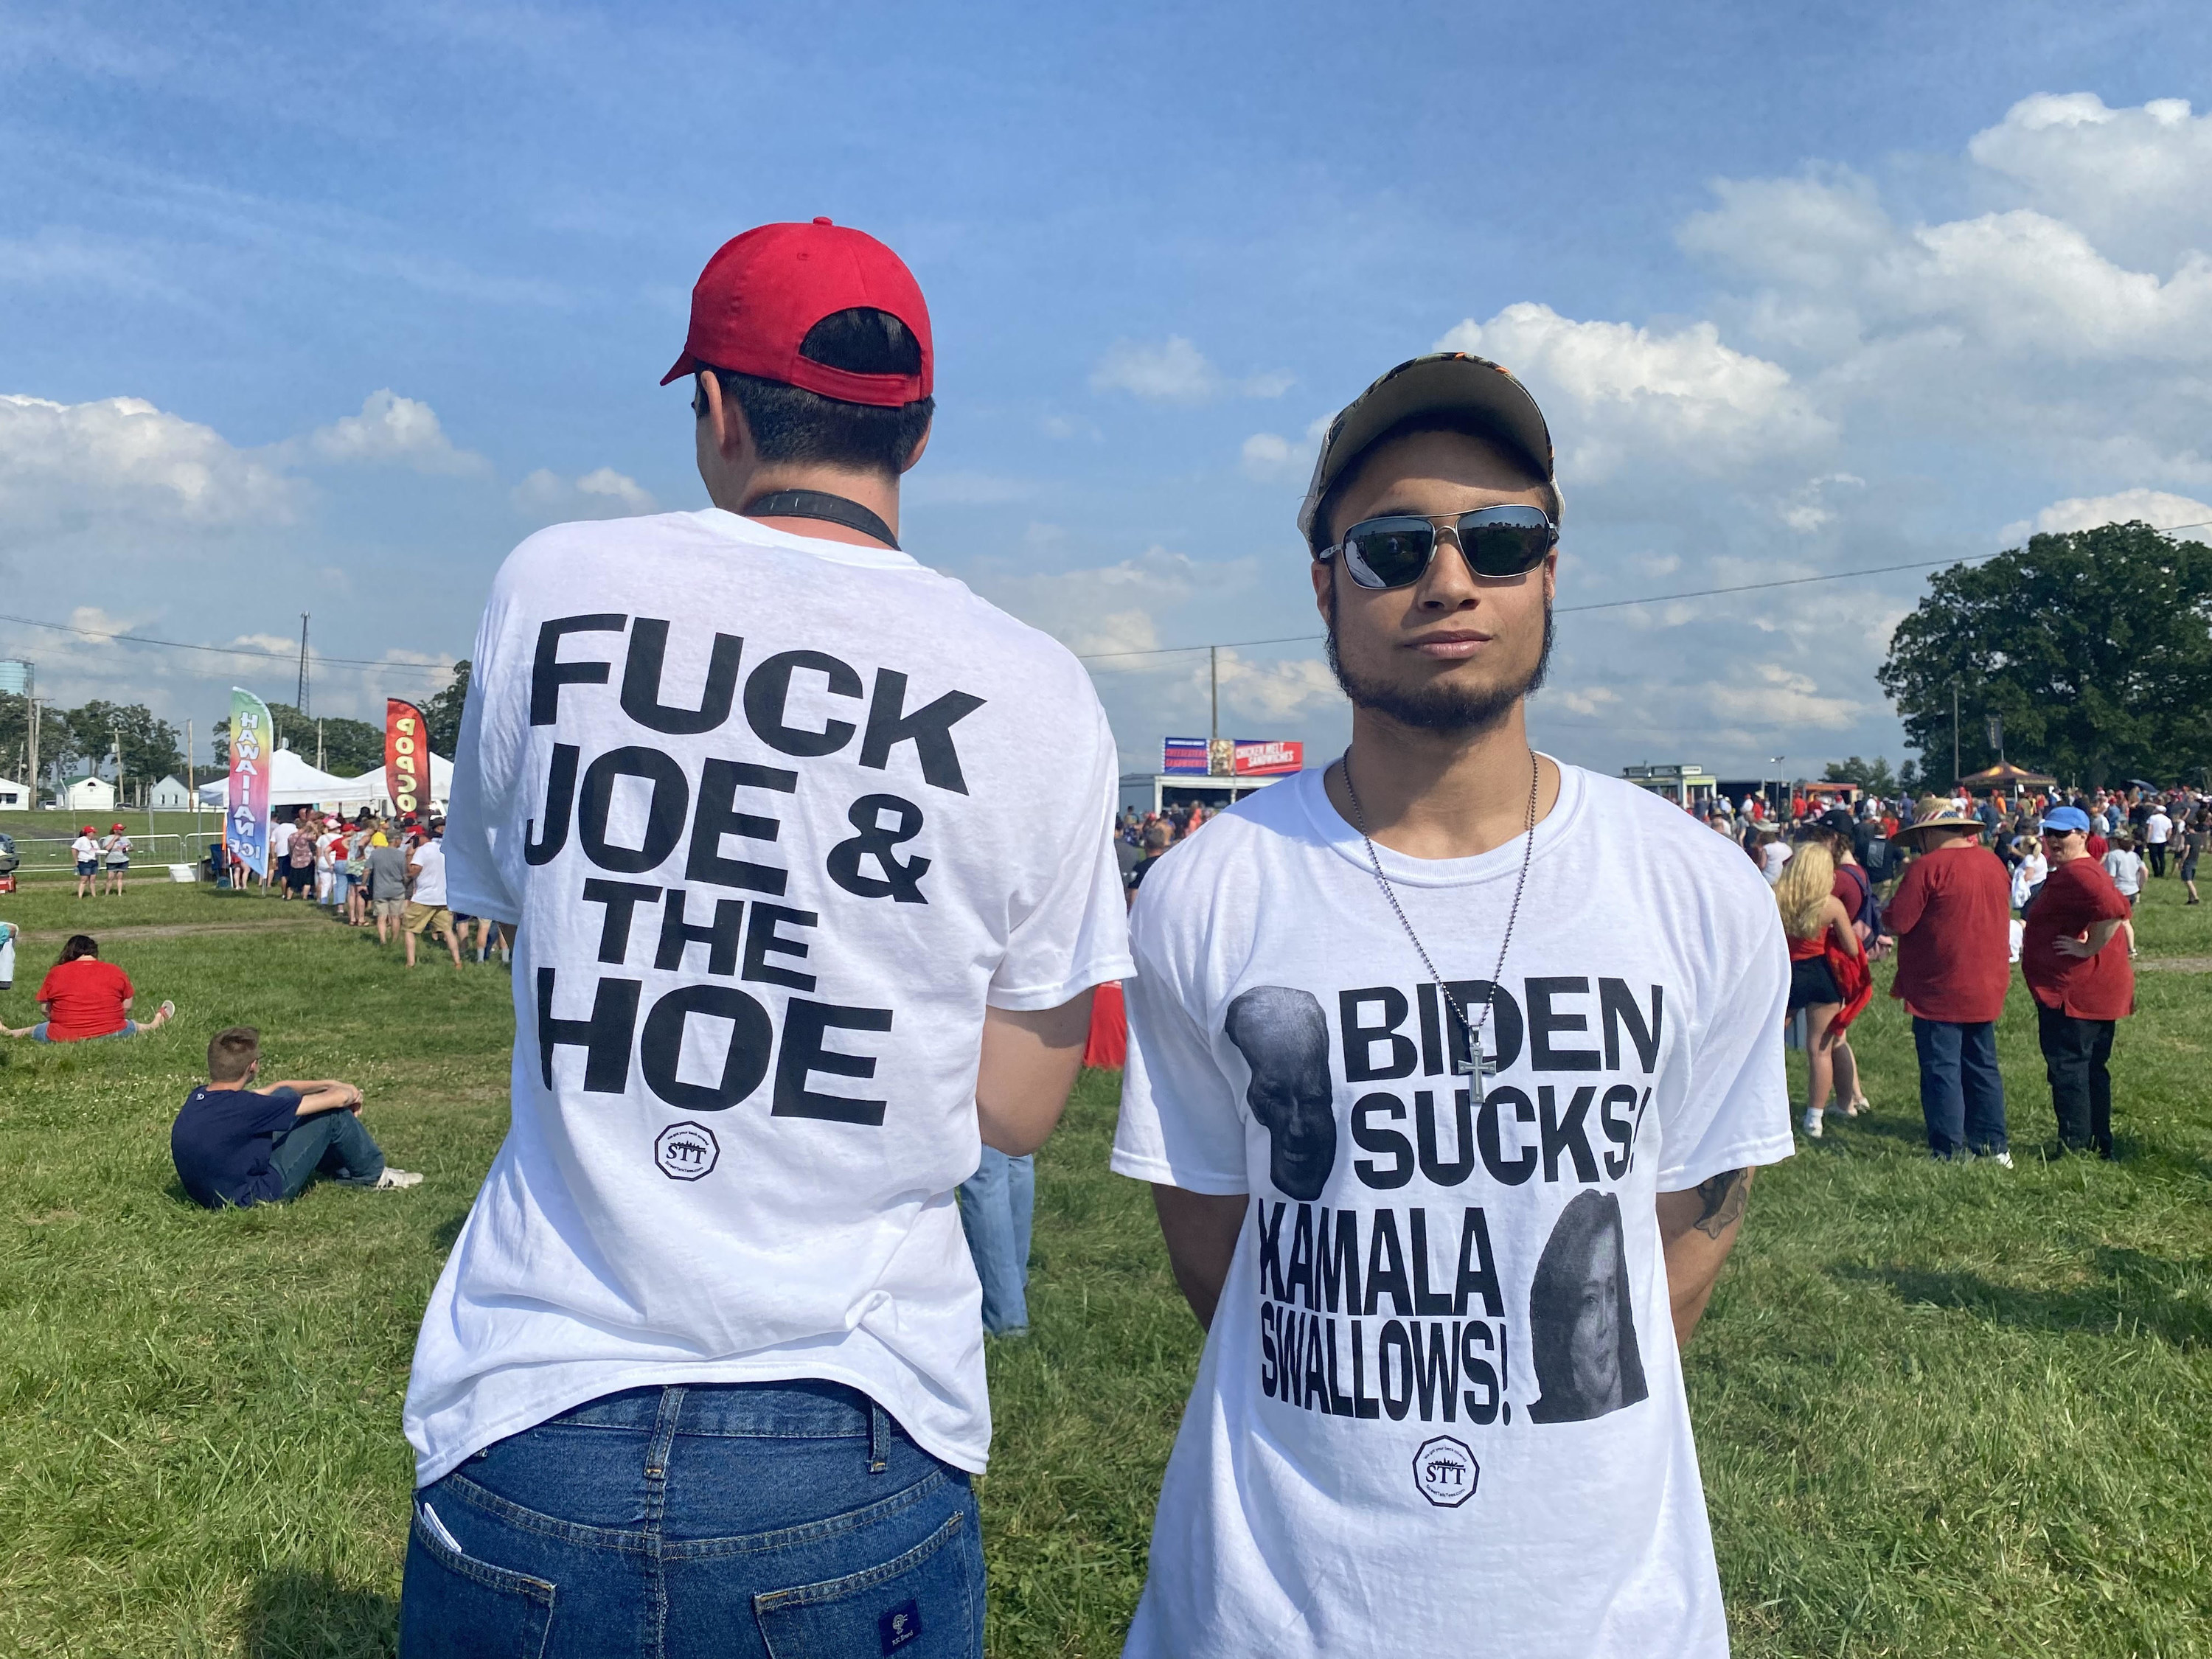 """Two people wearing the same T-shirt show """"Biden Sucks Kamala Swallows!"""" on the front and """"Fuck Joe & the Hoe"""" on the back"""